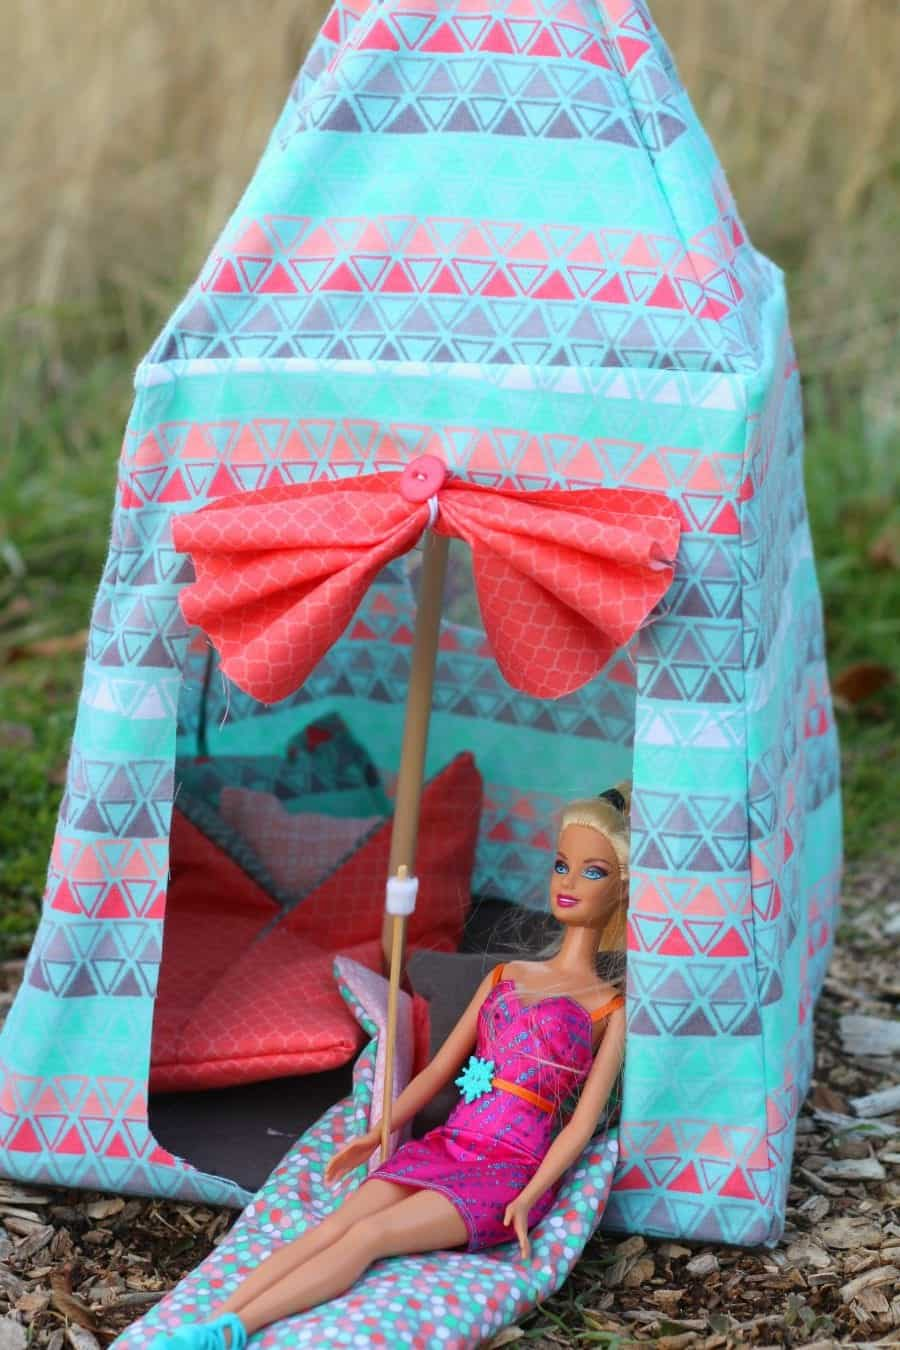 barbie-tent-pattern-to-buy-super-cute